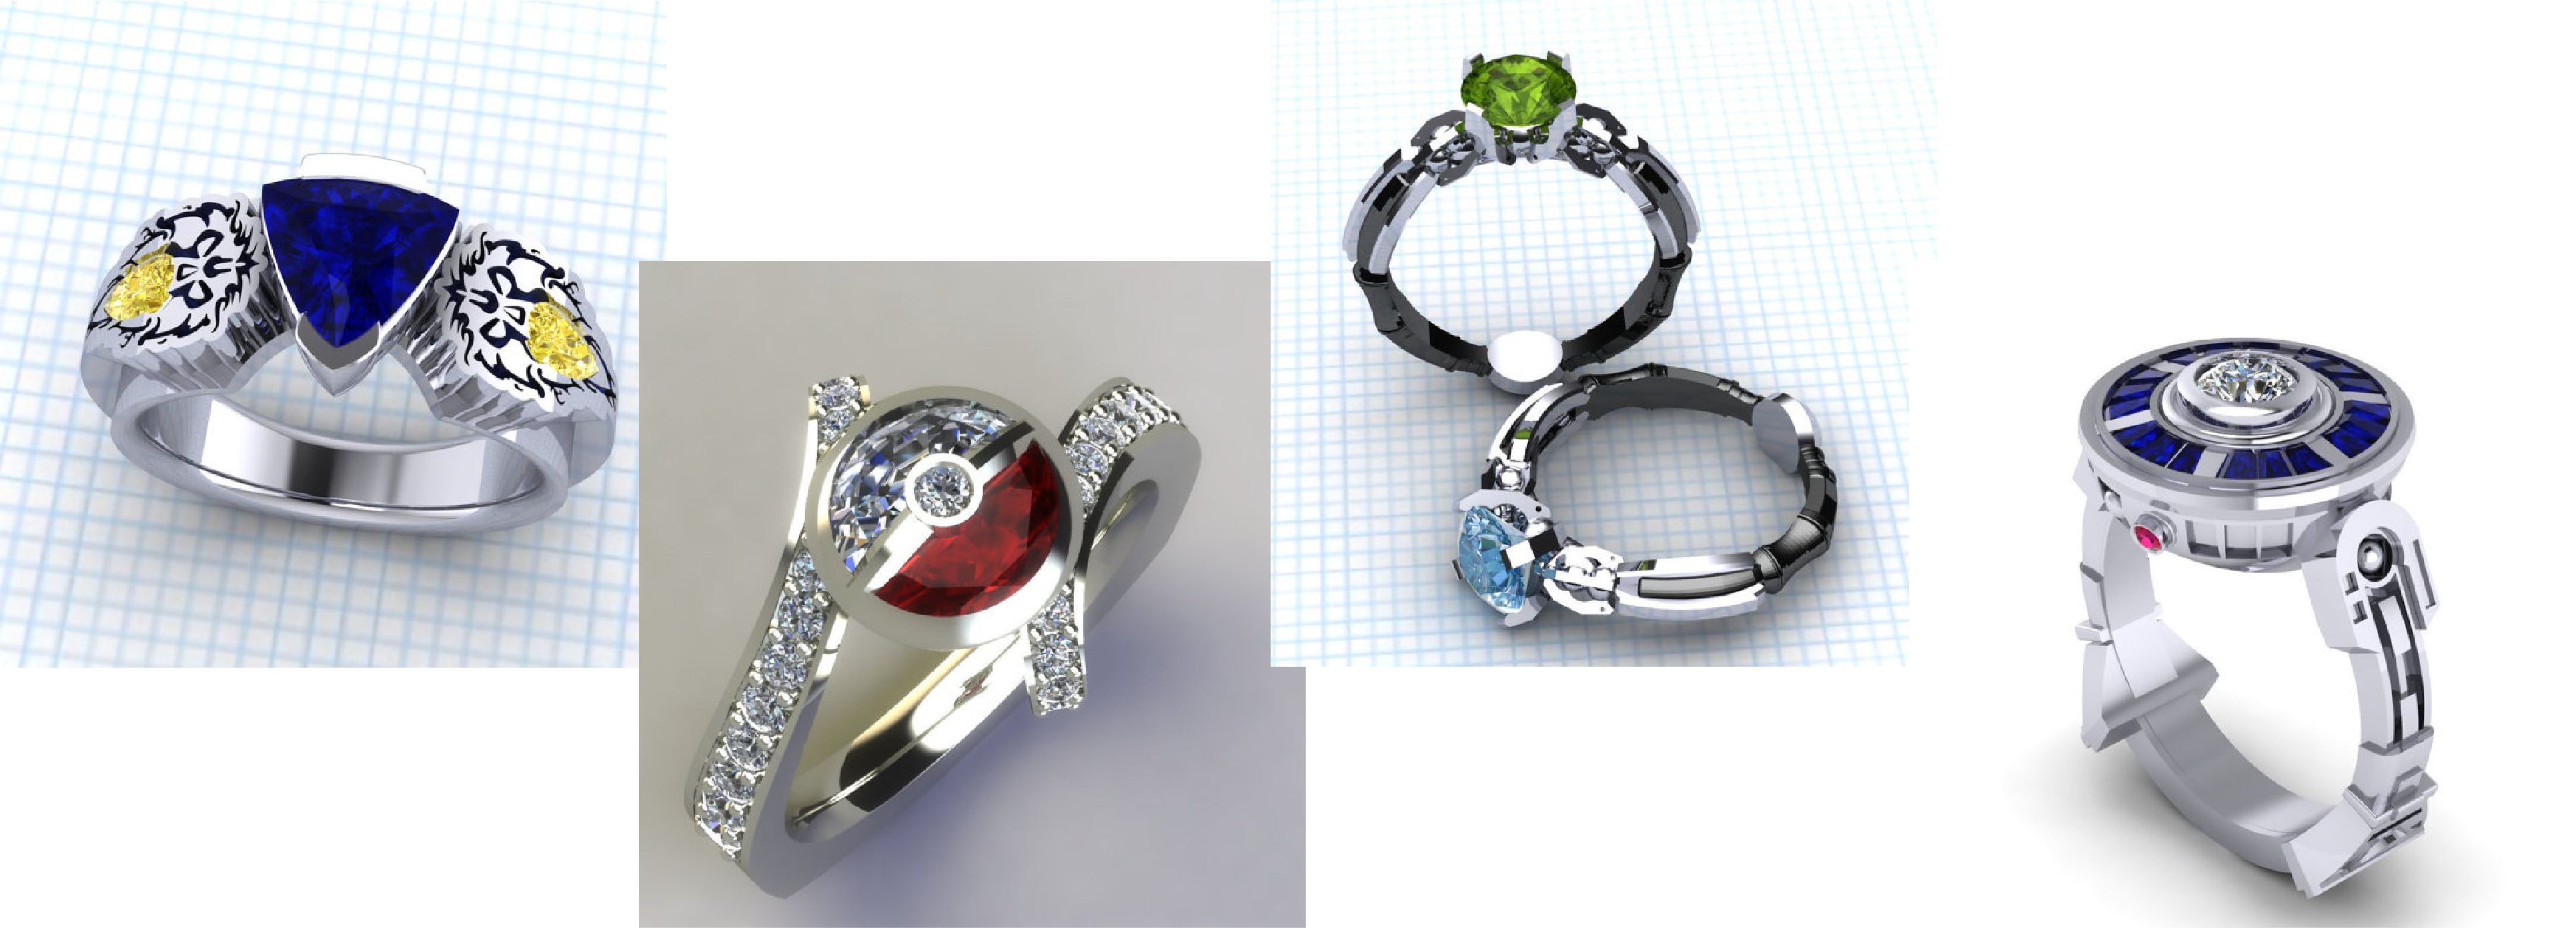 by mech how rings xenogears design blog fei custom inspired geek takayas to elly ring and jewelry his wedding engagement her a